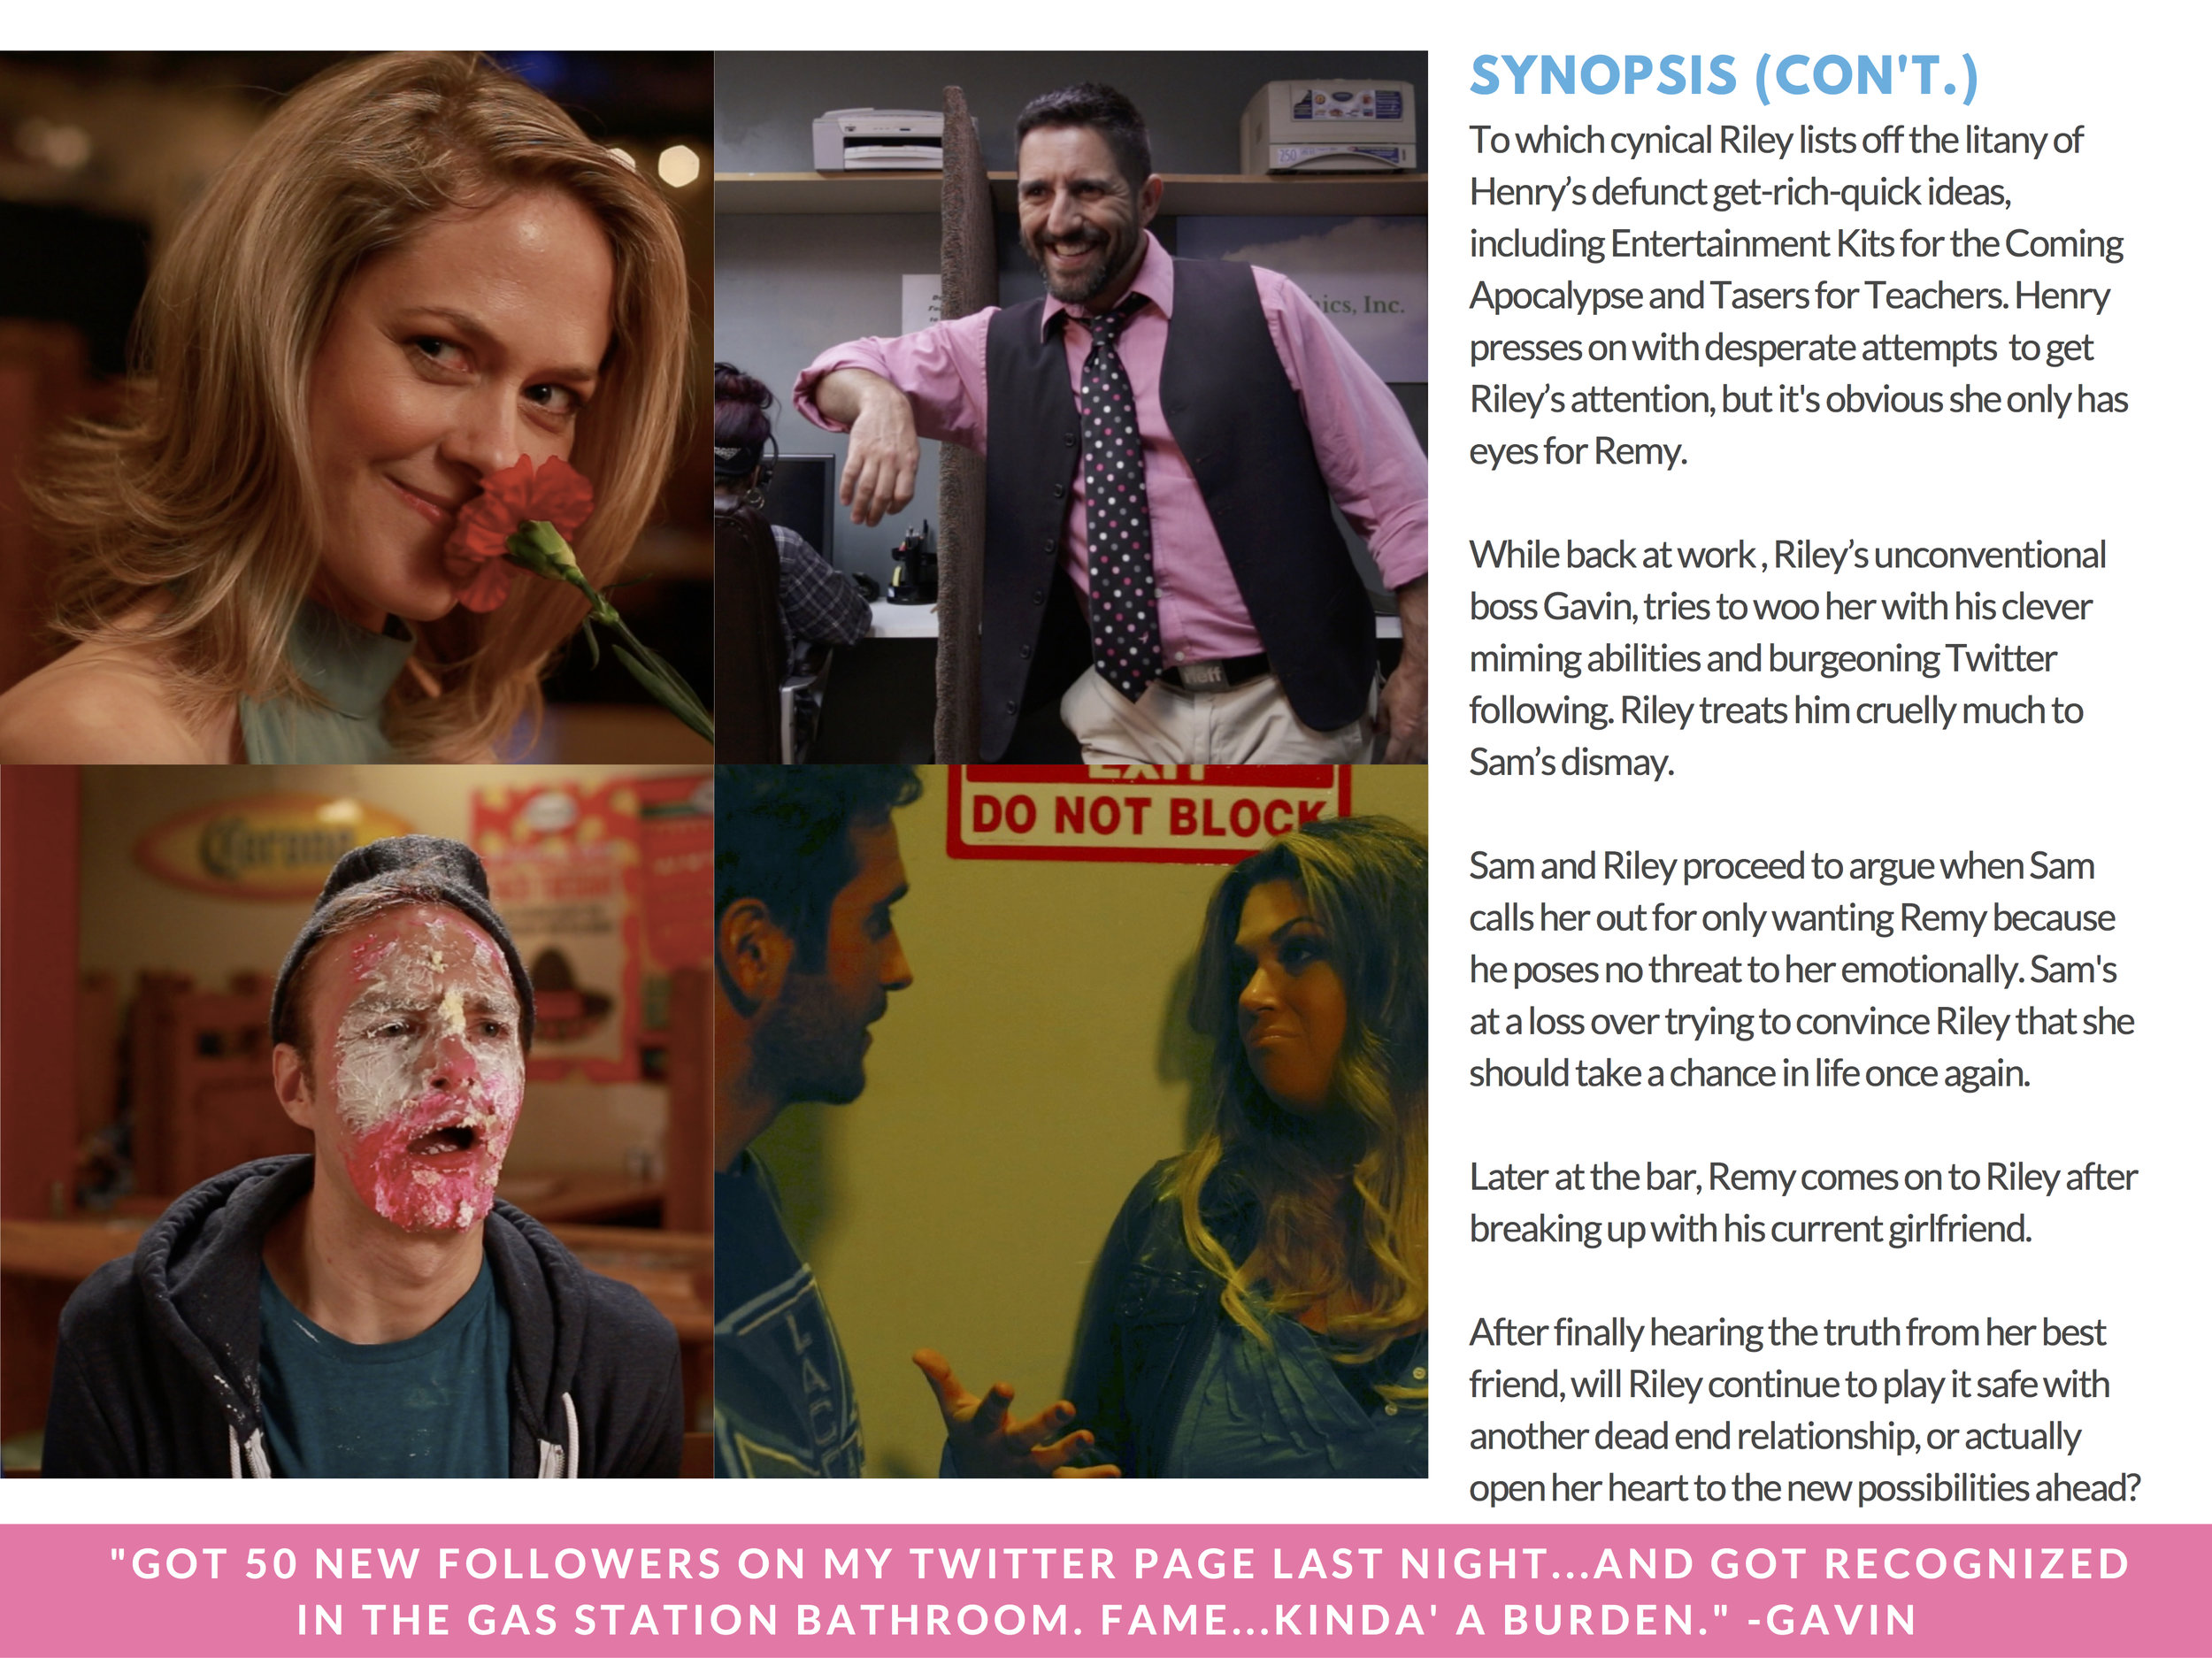 RILEY PRESS KIT - PAGE 6 ( SYNOPSIS - CON'T.   )  - CLICK FOR HIGH RES JPEG